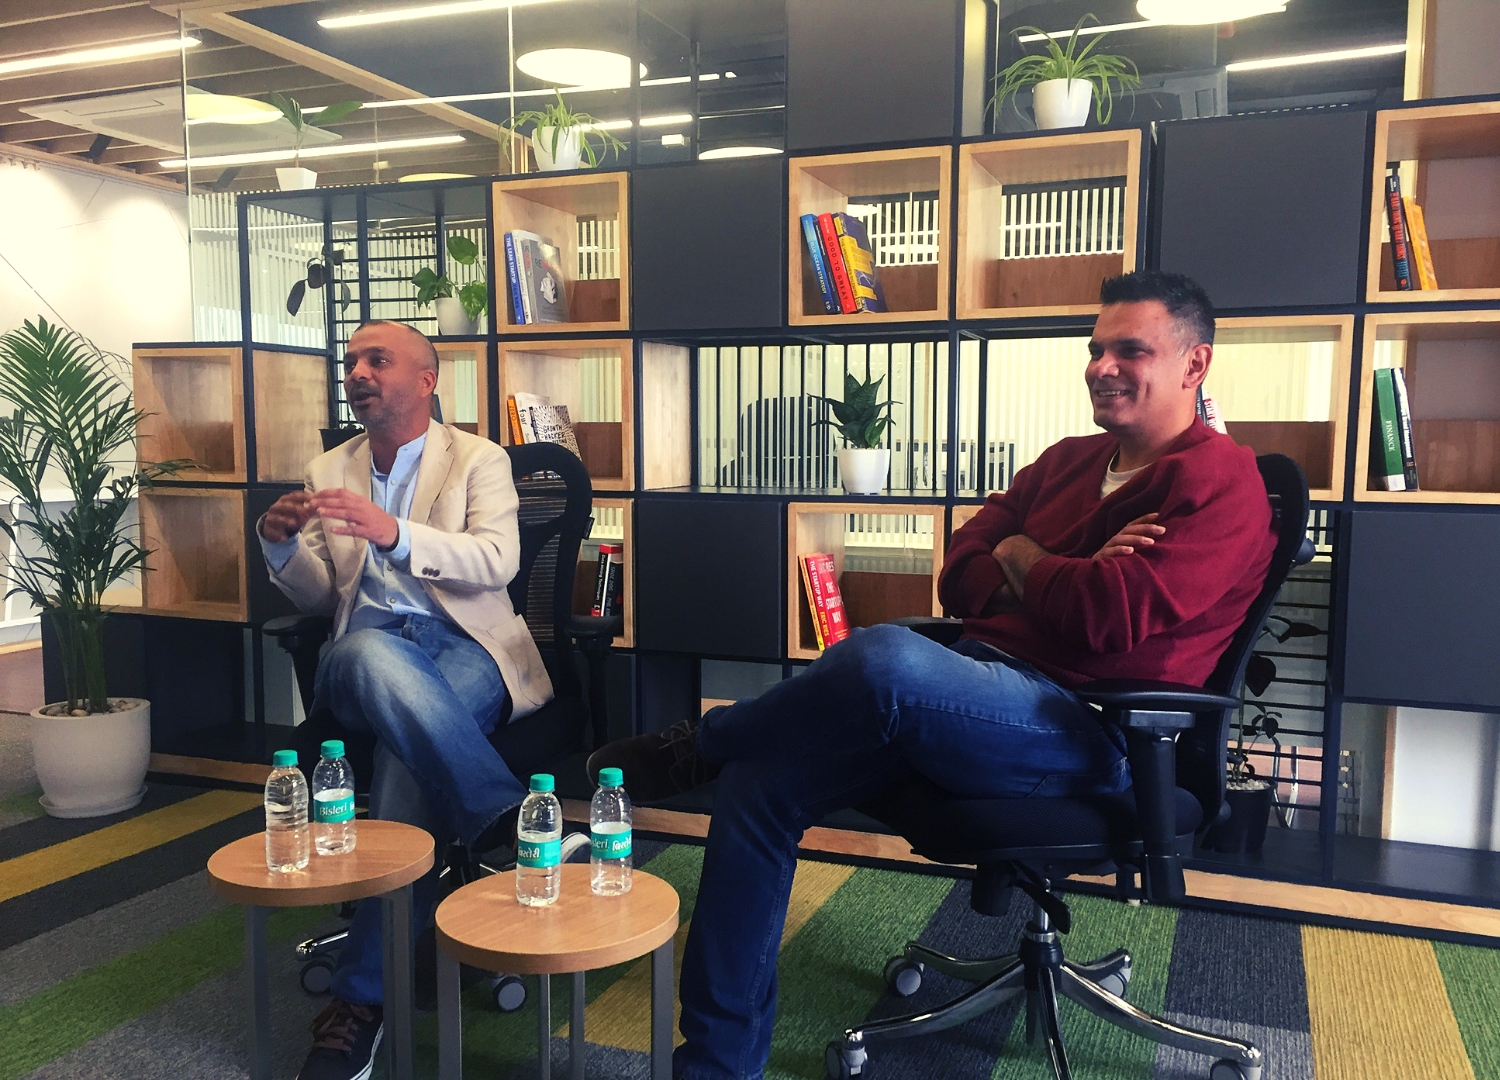 "On February 15, 2019, Mayank Bhatnagar and Harsh Gahlaut, cofounders of FinEdge, a Fin-Tech enterprise, joined us on the floor to share the first-hand account of their entrepreneurial journey with the startups who are onboard with us for the Acceleration Program (Powered by Numa). The entrepreneurs gave insight into the challenges they faced on their journey and how they deciphered their way out of those. The idea of this session was to help our startups to foster entrepreneurial mindset, taking examples from successful businessmen who have seen all sides of the story.  Summing up the session, Divvya Guptaa, CEO - UIncept, articulated ""With  Founders Story  we want our startups to understand the ground reality of running a business. When you are on the field, you can't just go by the book. Every challenge on the way tests your mettle and your ability to improvise and innovate, and we thought with these sessions, the startups will gauge how established individuals have performed on the field, and how they conquer every obstacle they face to claim their success. I thank Mayank and Harsh for sharing their very insightful story, and hope that our teams had a great takeaway from it.""     About FinEdge   Cofounded by Mayank Bhatnagar and Harsh Gahlaut, in 2011, FinEdge aims at enabling wealth creation for their clients through quality and conflict free financial planning advice. They use technology to reach across demographics and geographies, provide a convenient, low cost - high quality, process driven, goal oriented, financial planning led wealth creation platform."